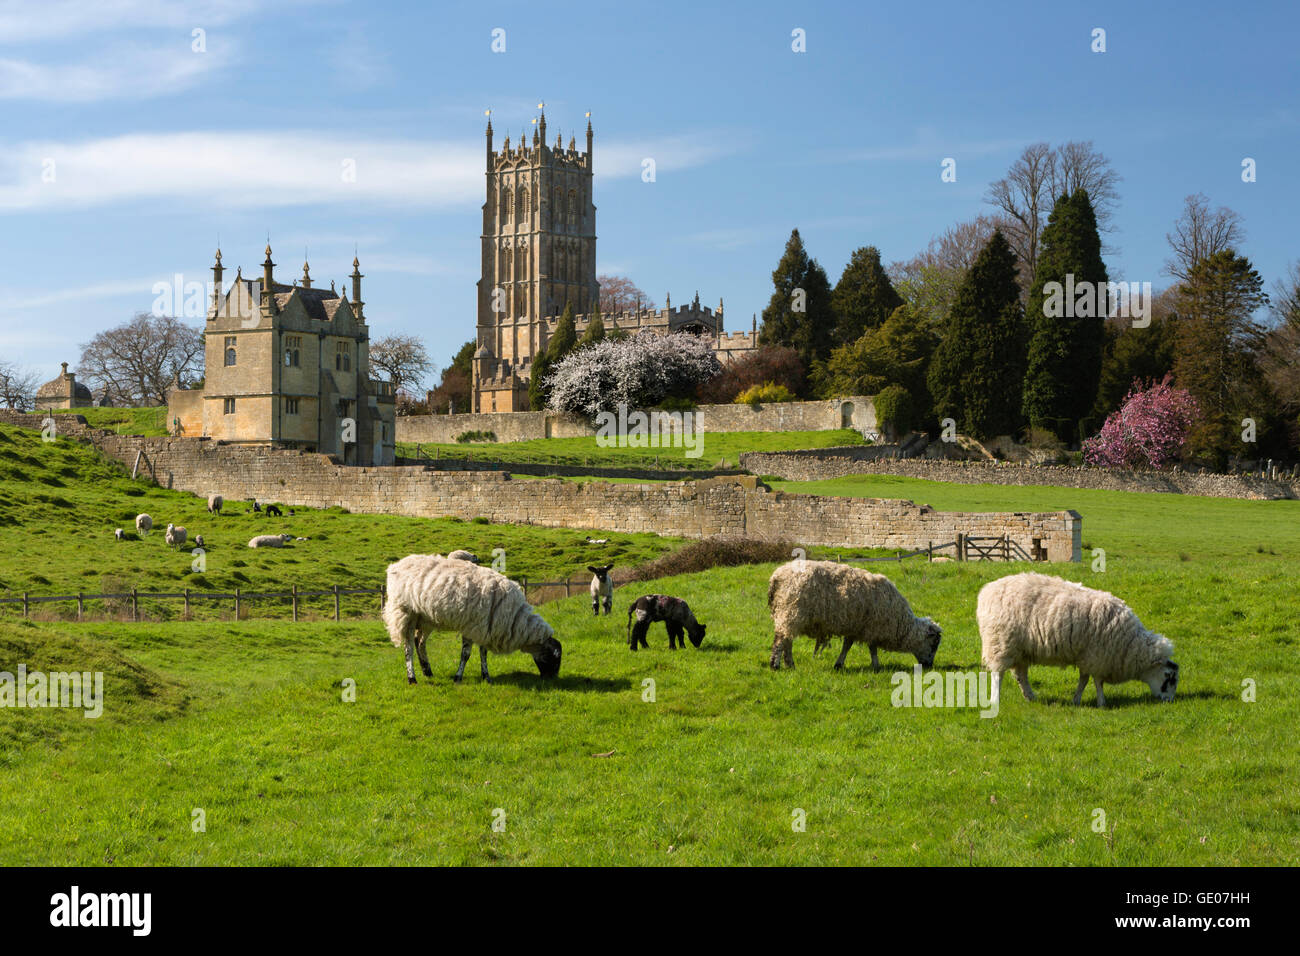 St James' Church and grazing sheep, Chipping Campden, Cotswolds, Gloucestershire, England, United Kingdom, Europe - Stock Image